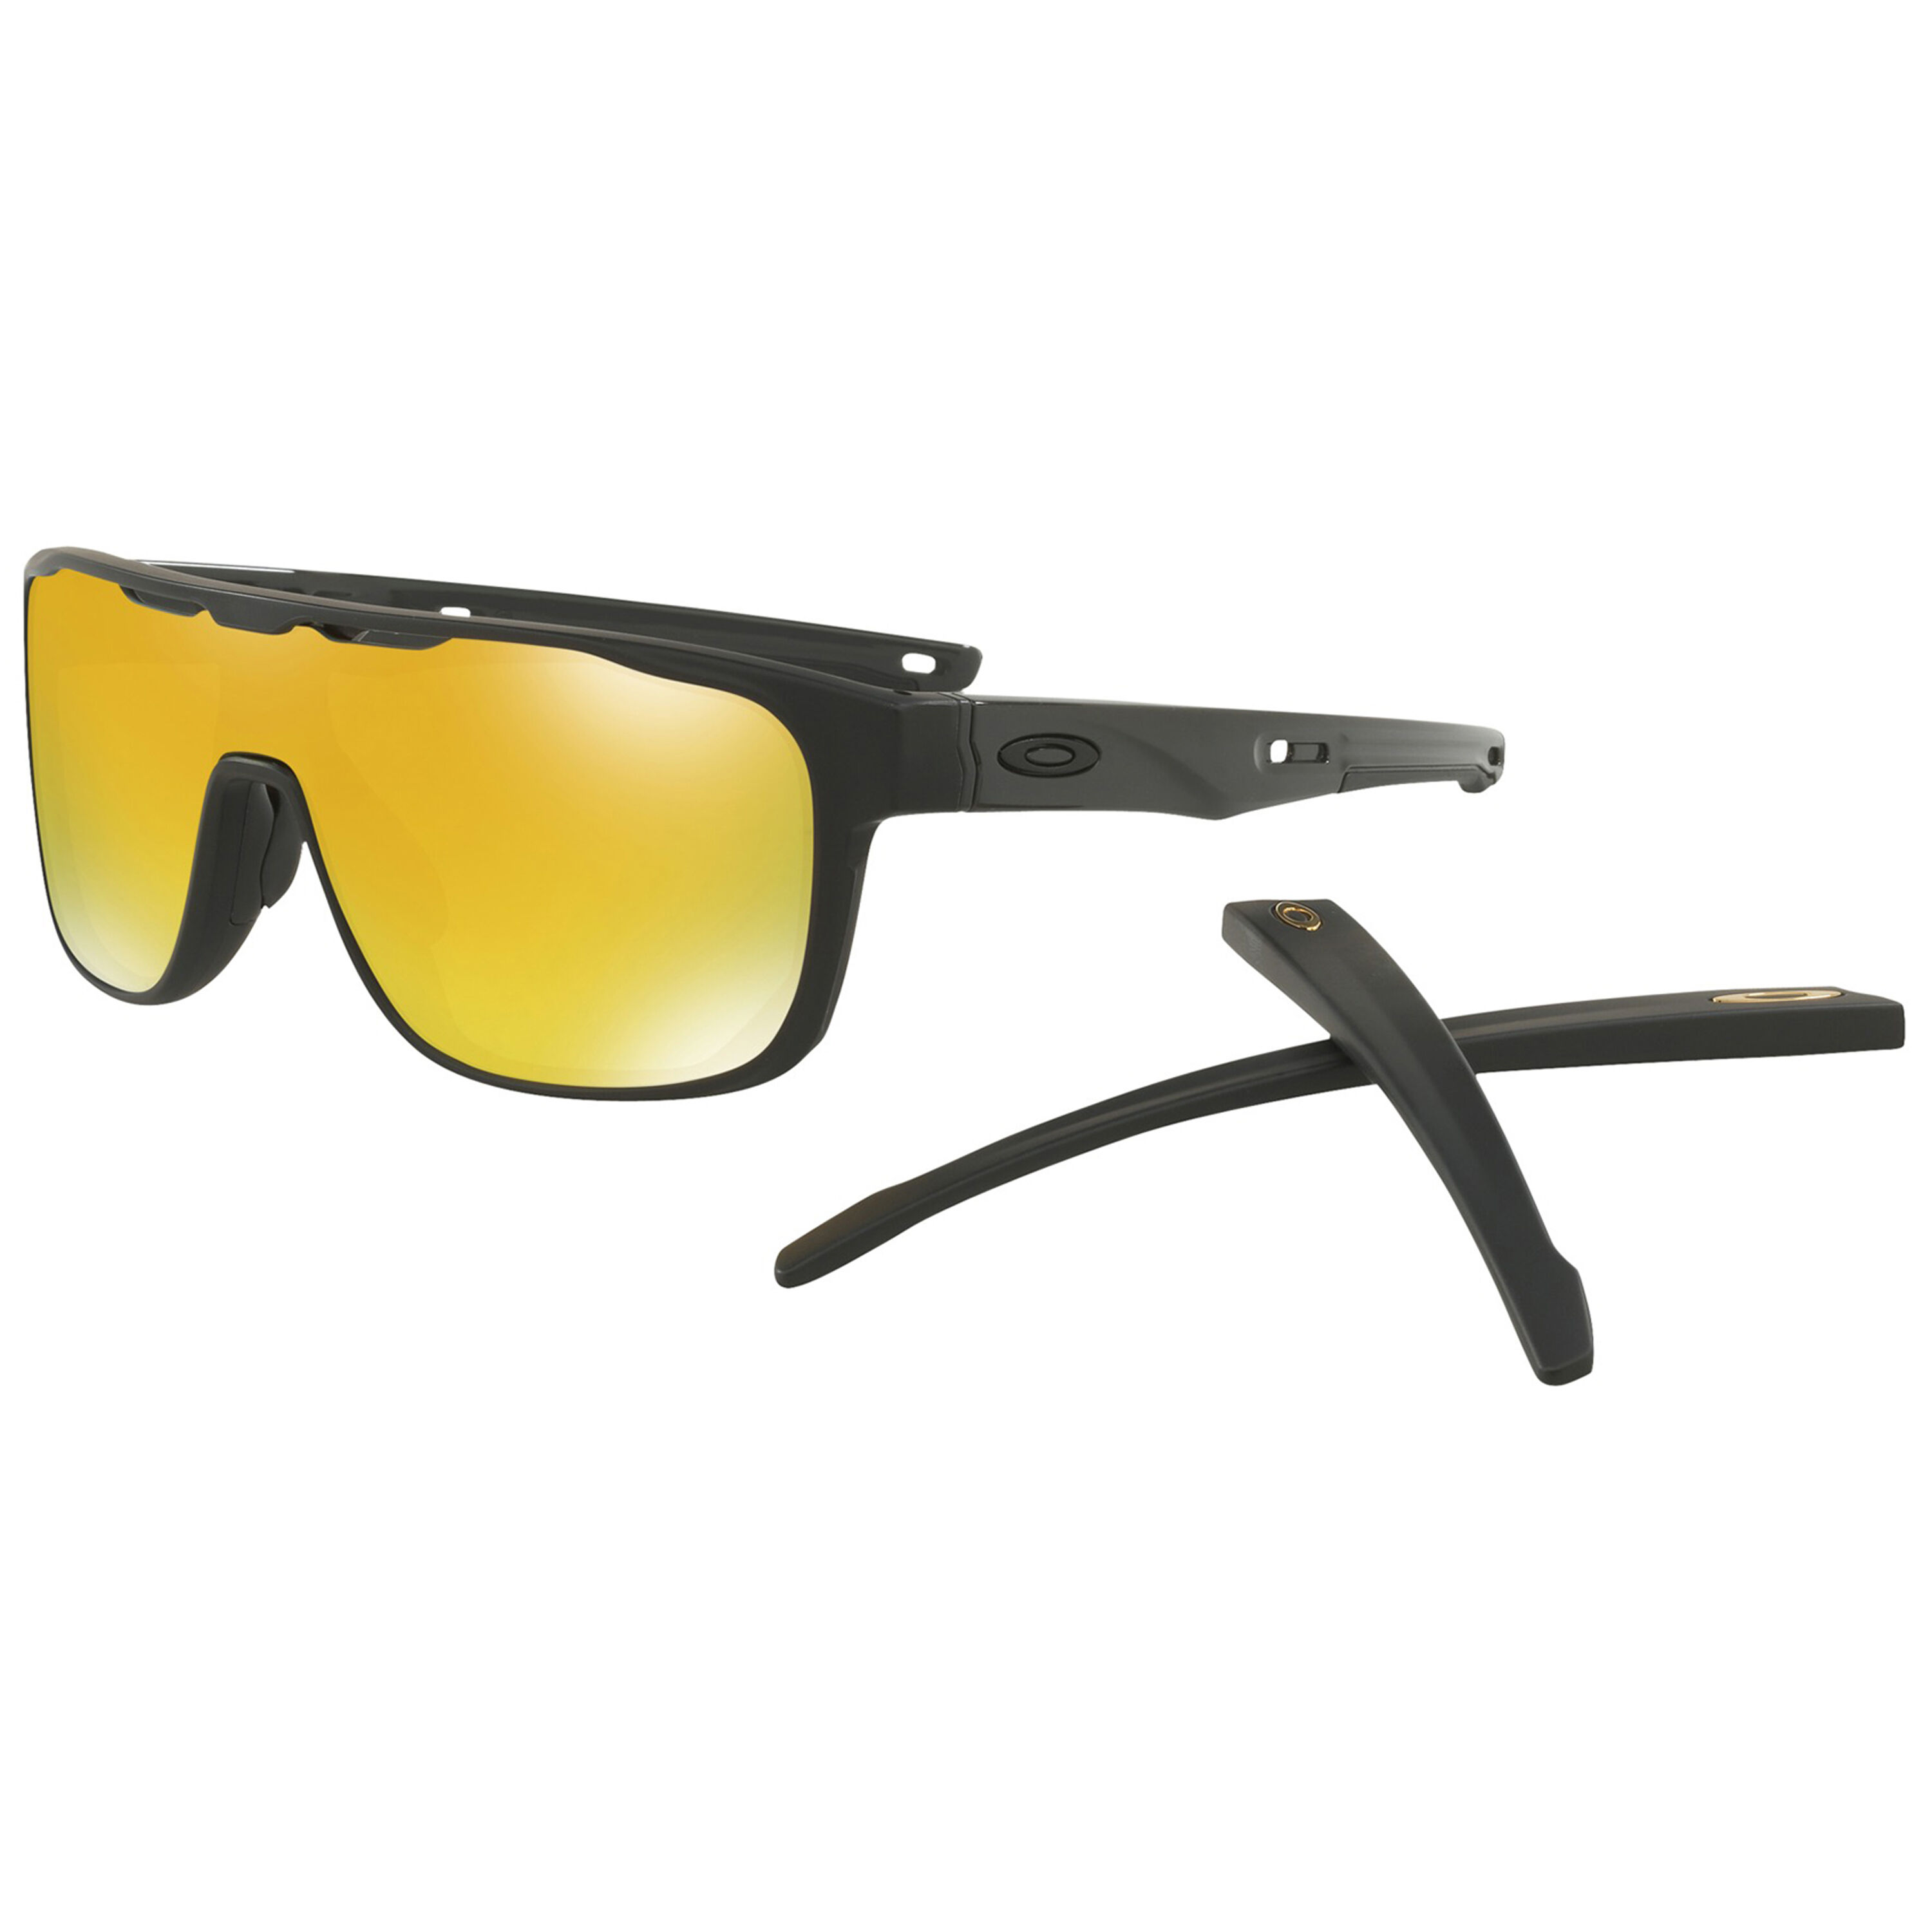 Lunettes Oakley Crossrange Shield · Lunettes Oakley Crossrange Shield ... d32958b986cd